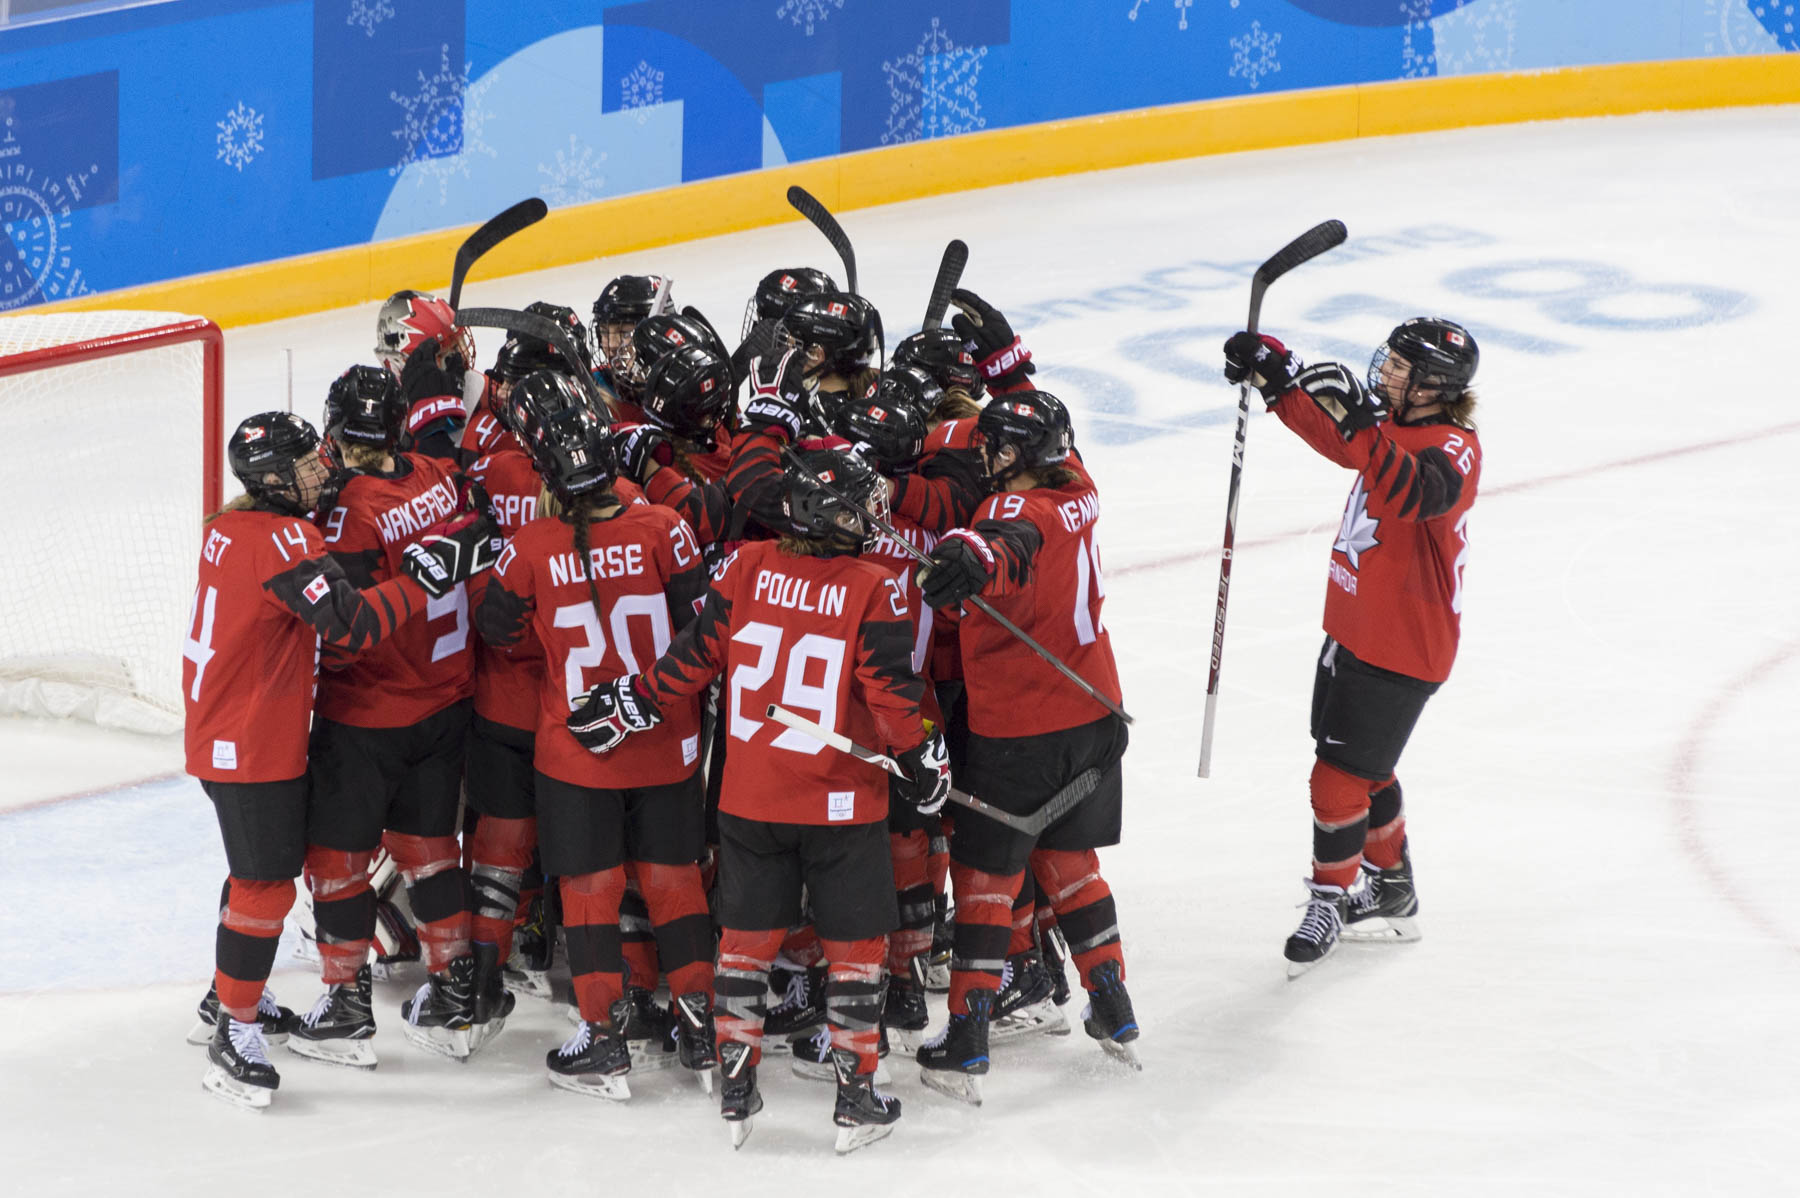 In the end, Team Canada won 5-0.